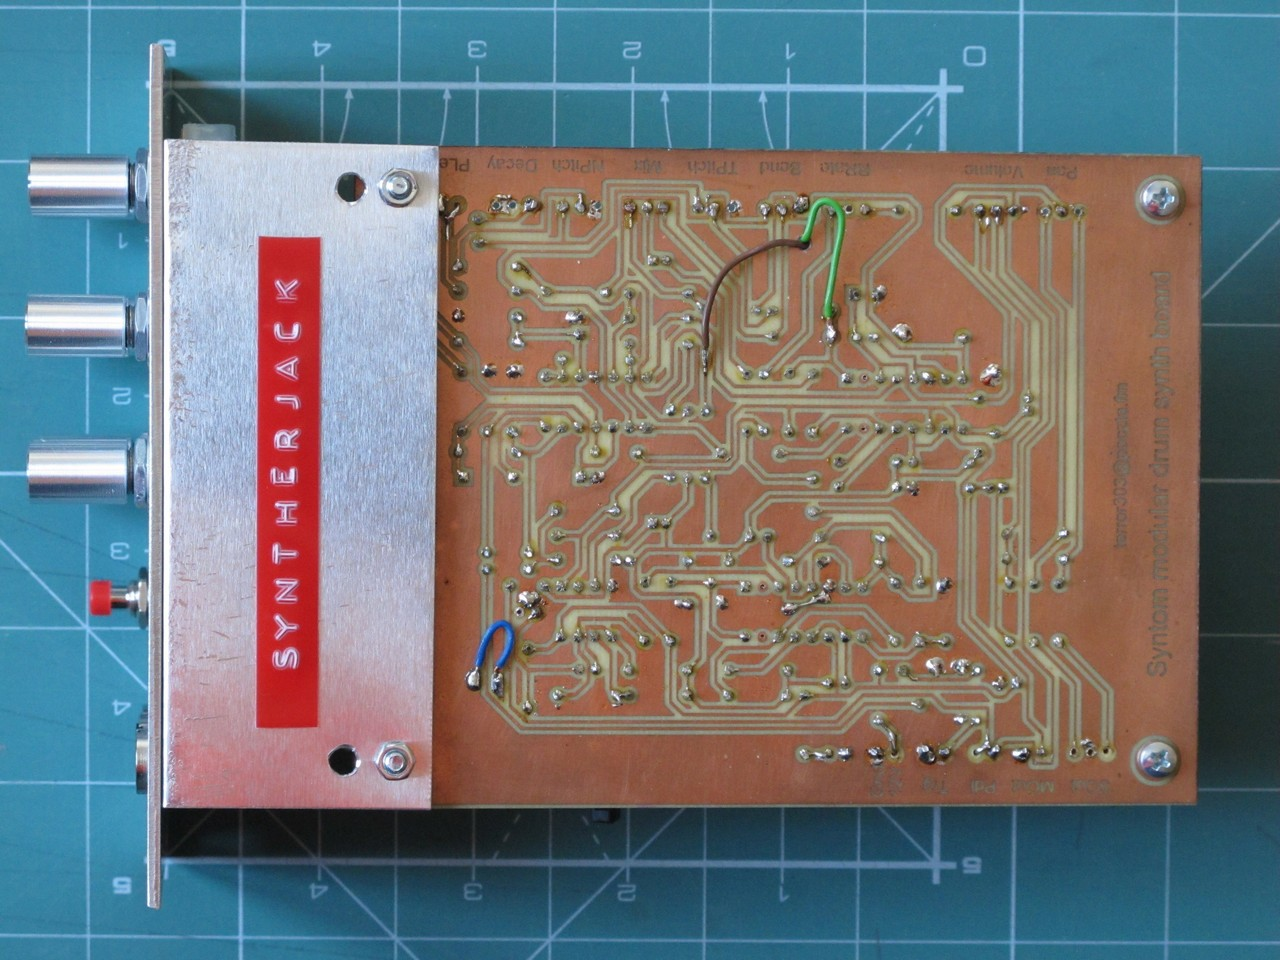 Synton II solder side